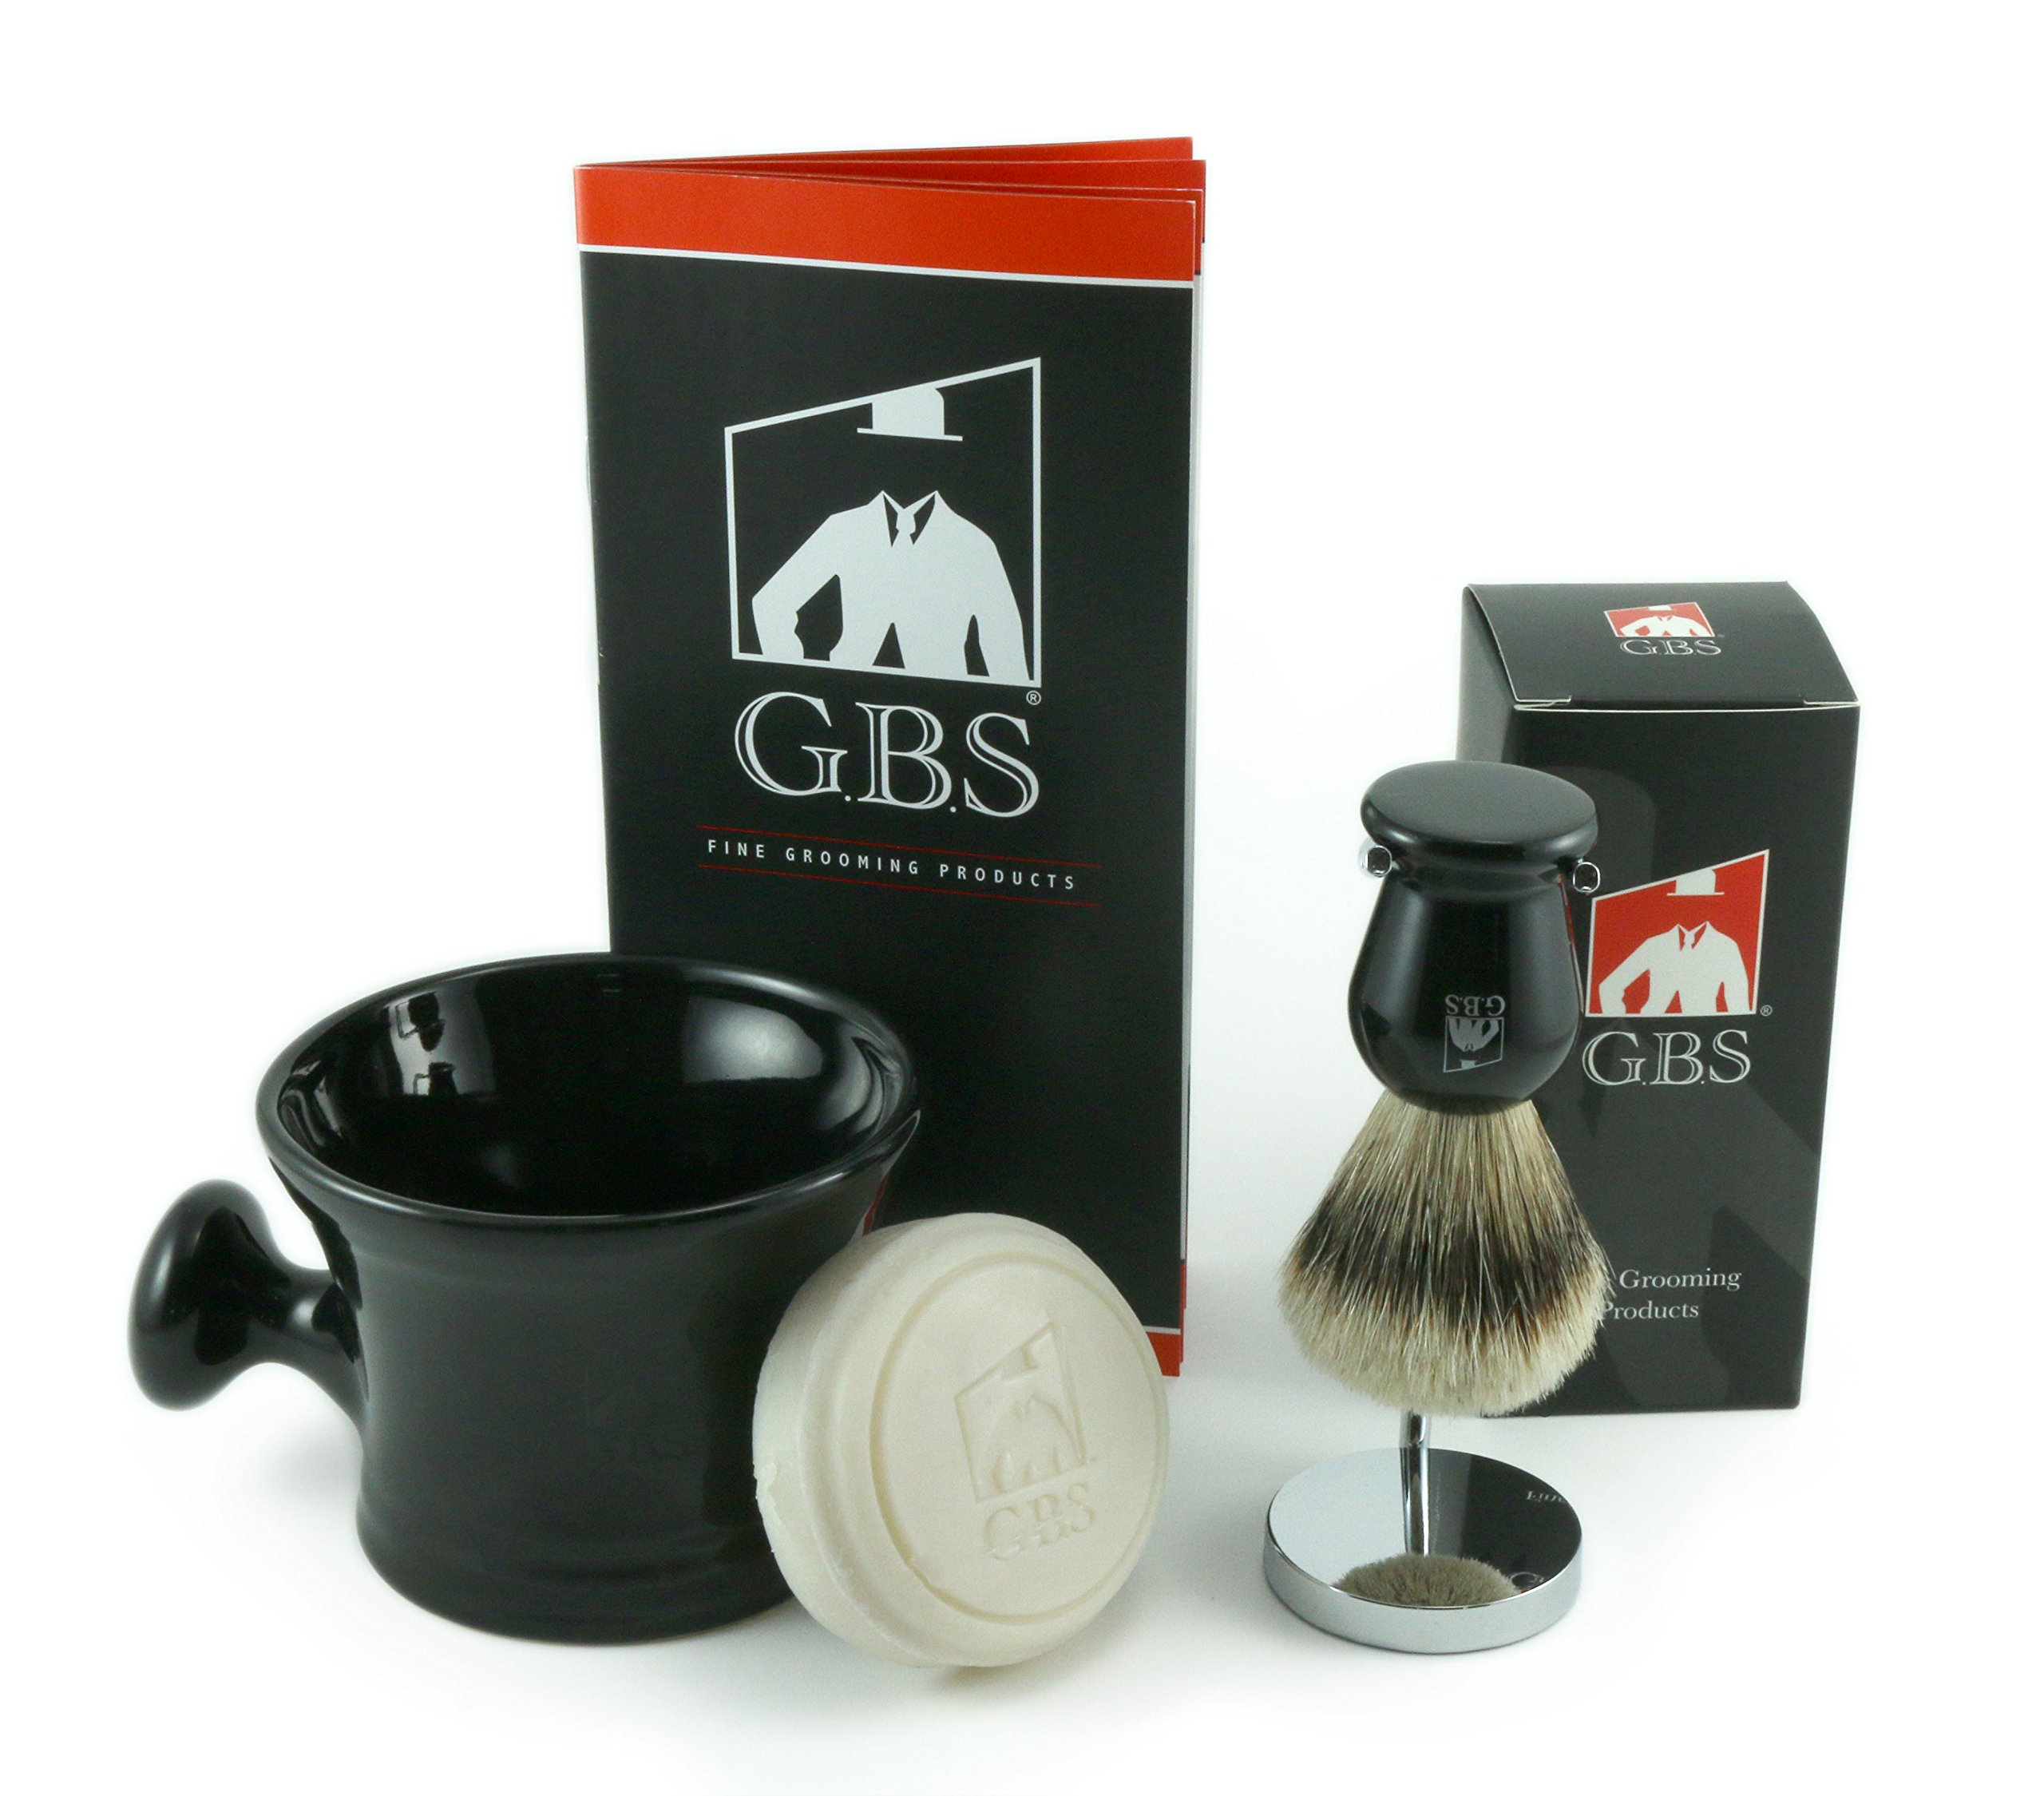 Men's Deluxe Grooming Set with Shaving Mug with Knob Handle, 100% Silvertip Badger Brush, Brush Stand and 97% All Natural Gbs Ocean Driftwood Shave Soap